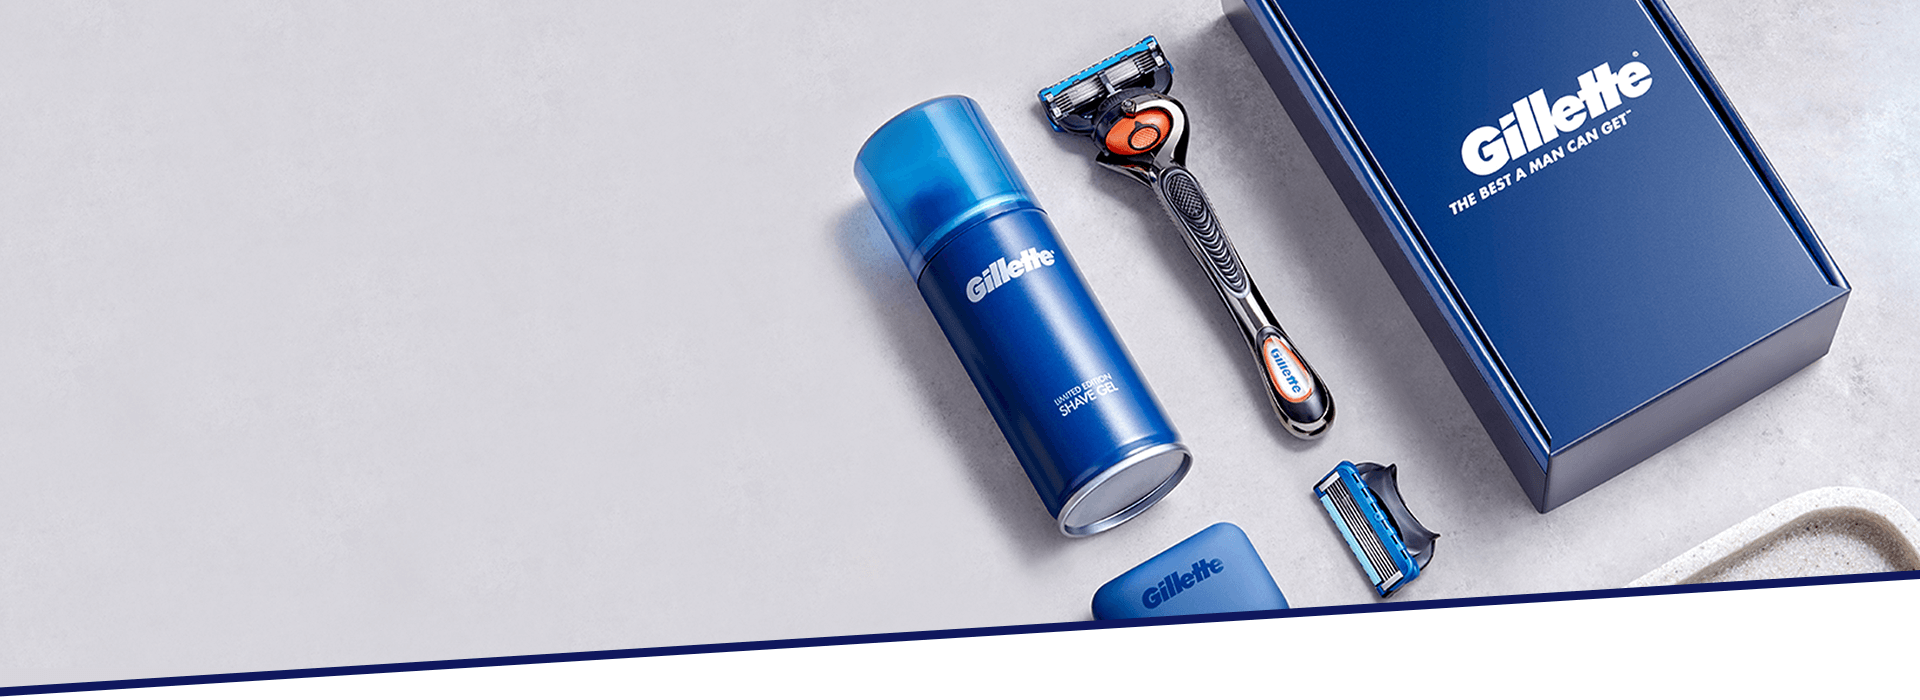 Razor Subscription & Shave Club: Your shave on your terms